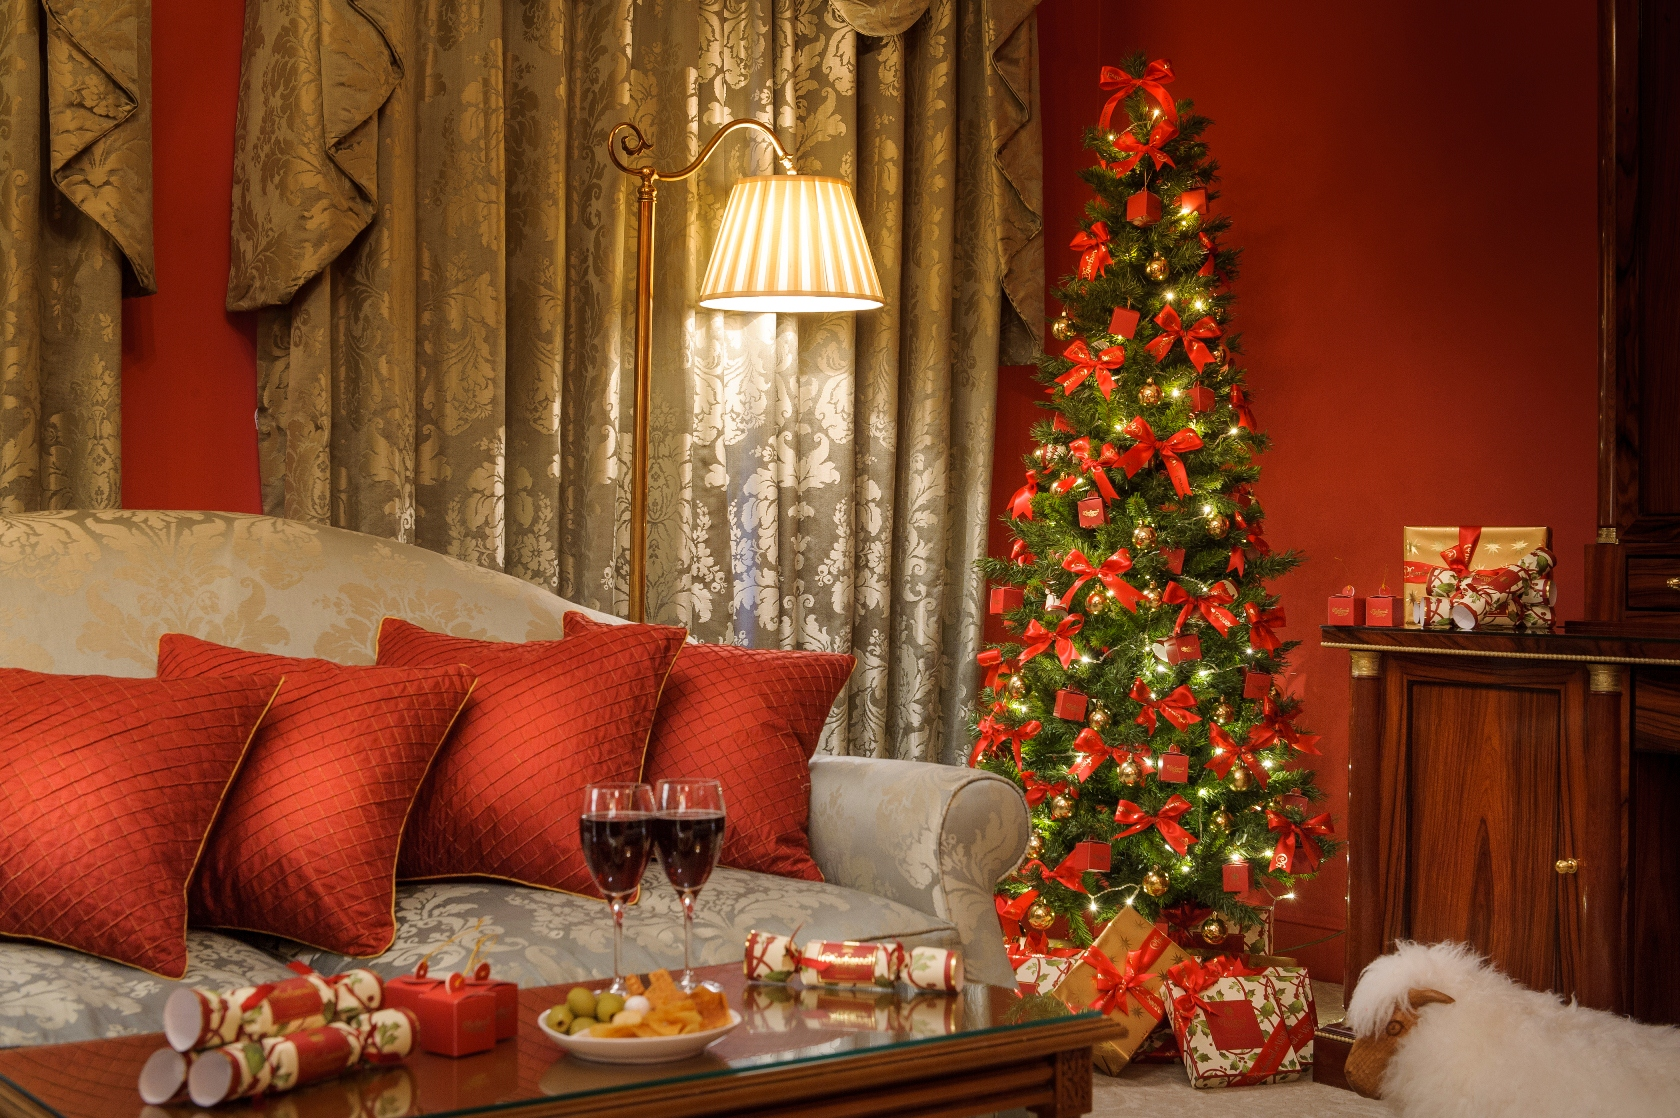 Decoration Hotel Prepare Your Home For Christmas Home Decor Ideas